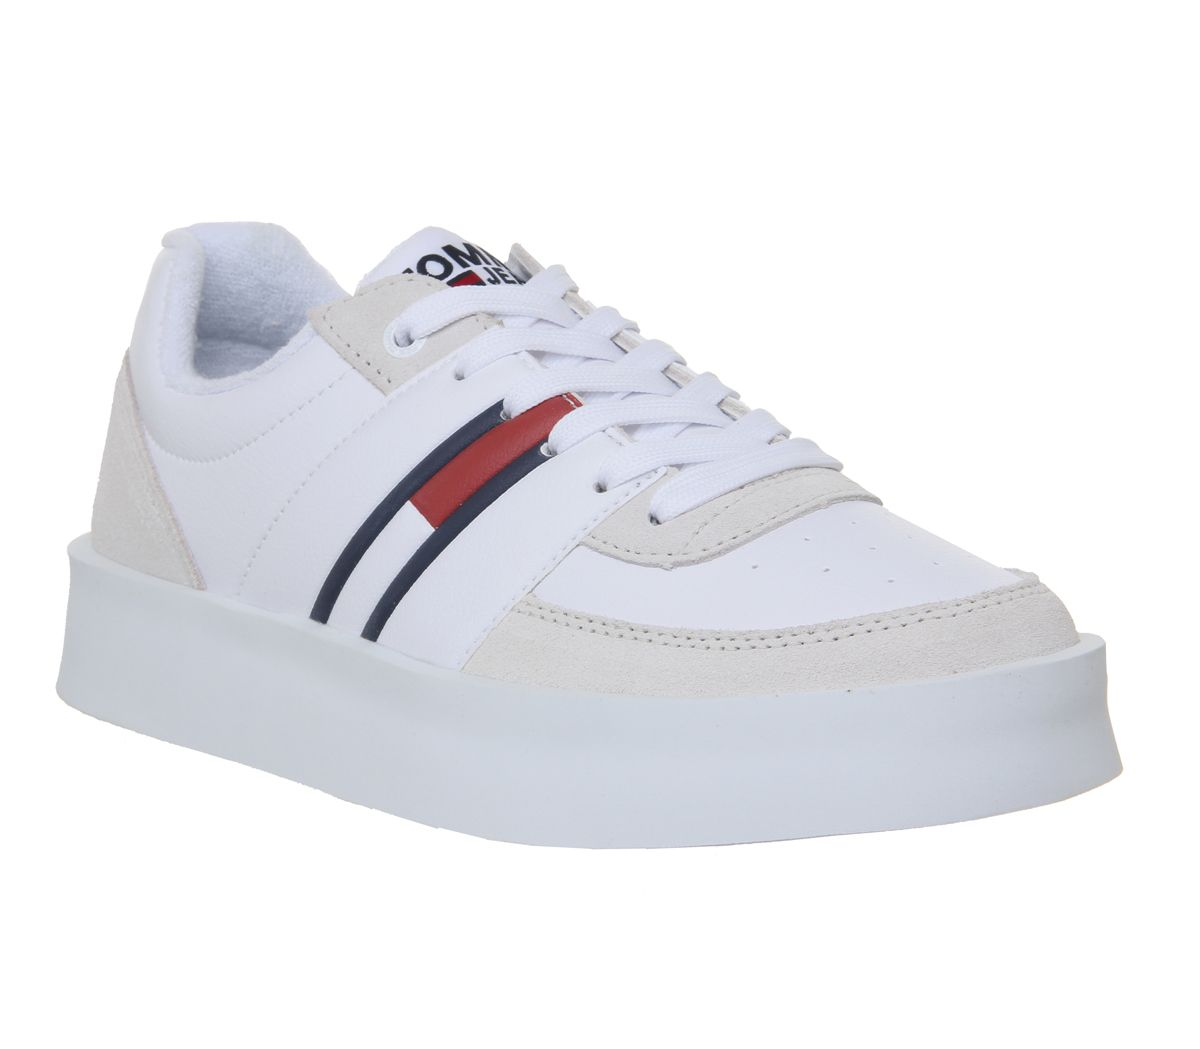 3575a2666873 Tommy Hilfiger Light Sneakers White - Hers trainers